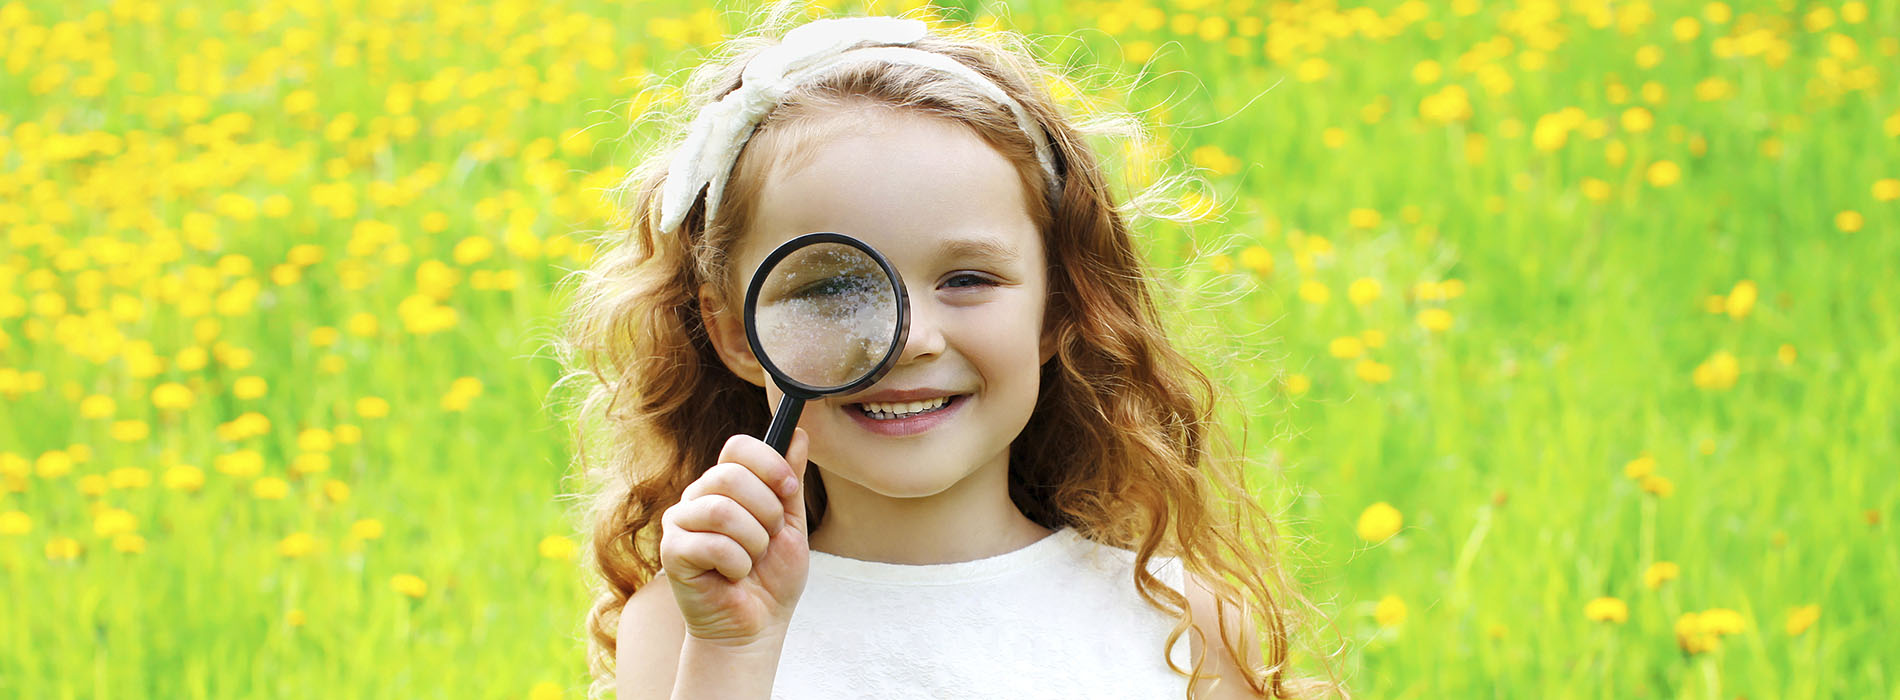 Smiling girl standing in a green field, looking through a magnifying glass